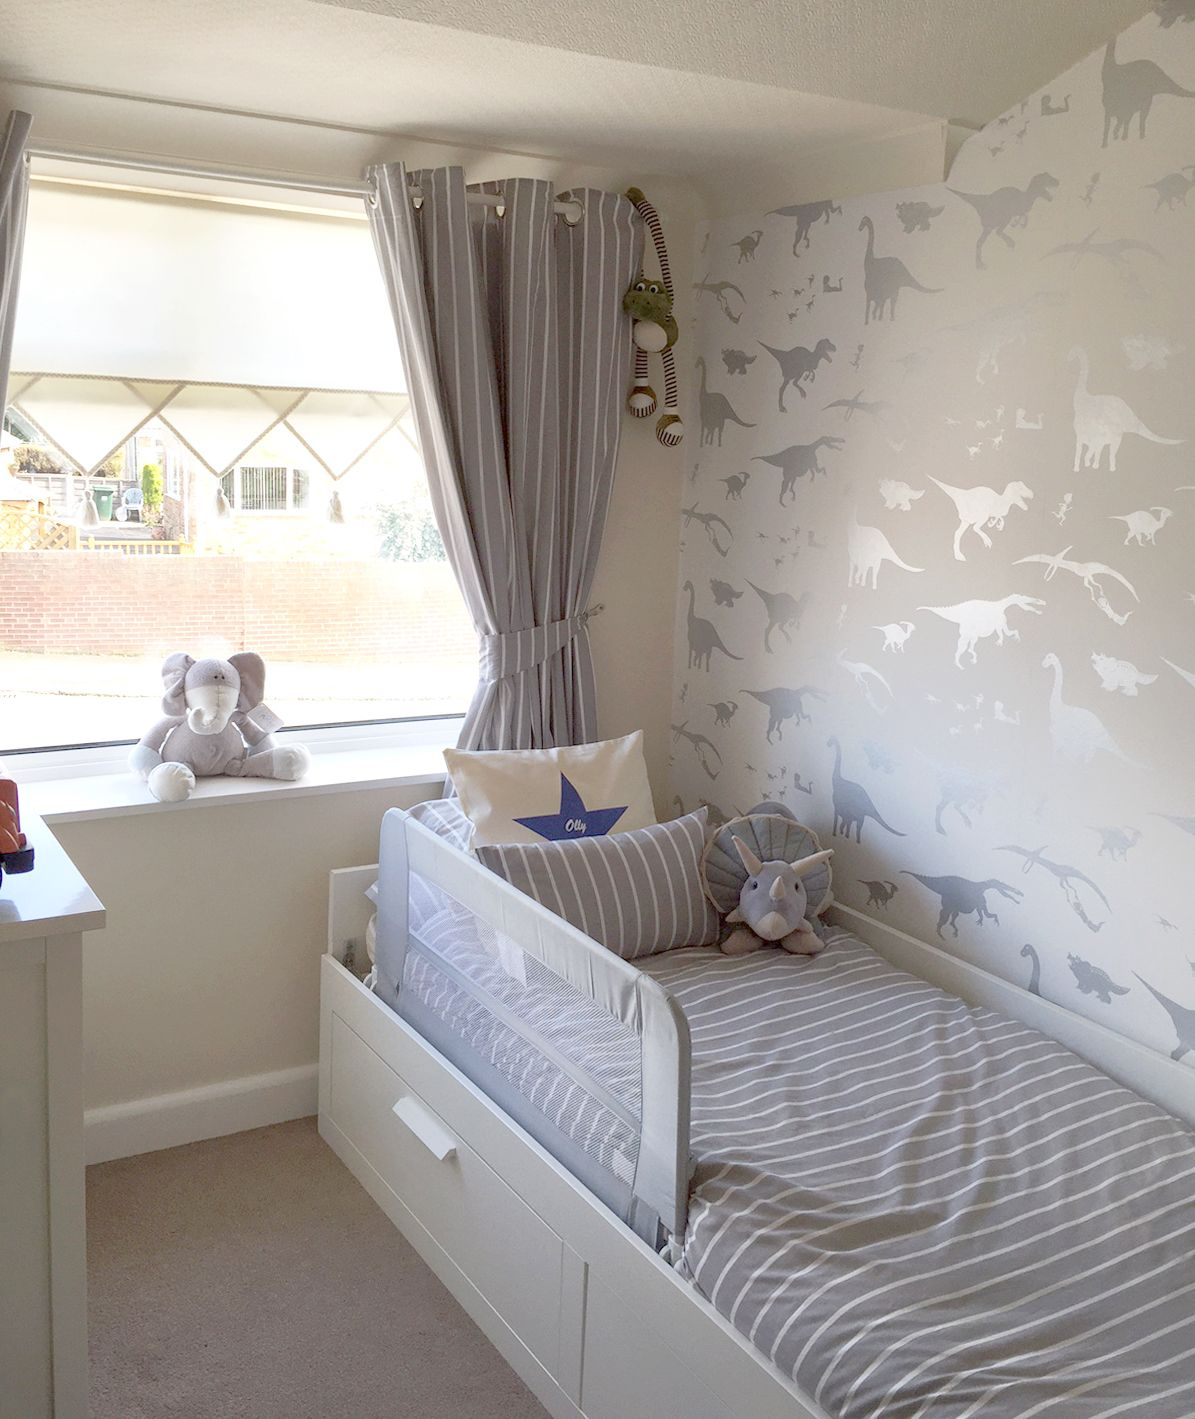 Childrens Bedroom Boys Bedroom Ideas Easy Bedroom Ideas Oak Furniture Bedroom Colour Paint Design: 'D'ya-think-e-saurus' White Wallpaper